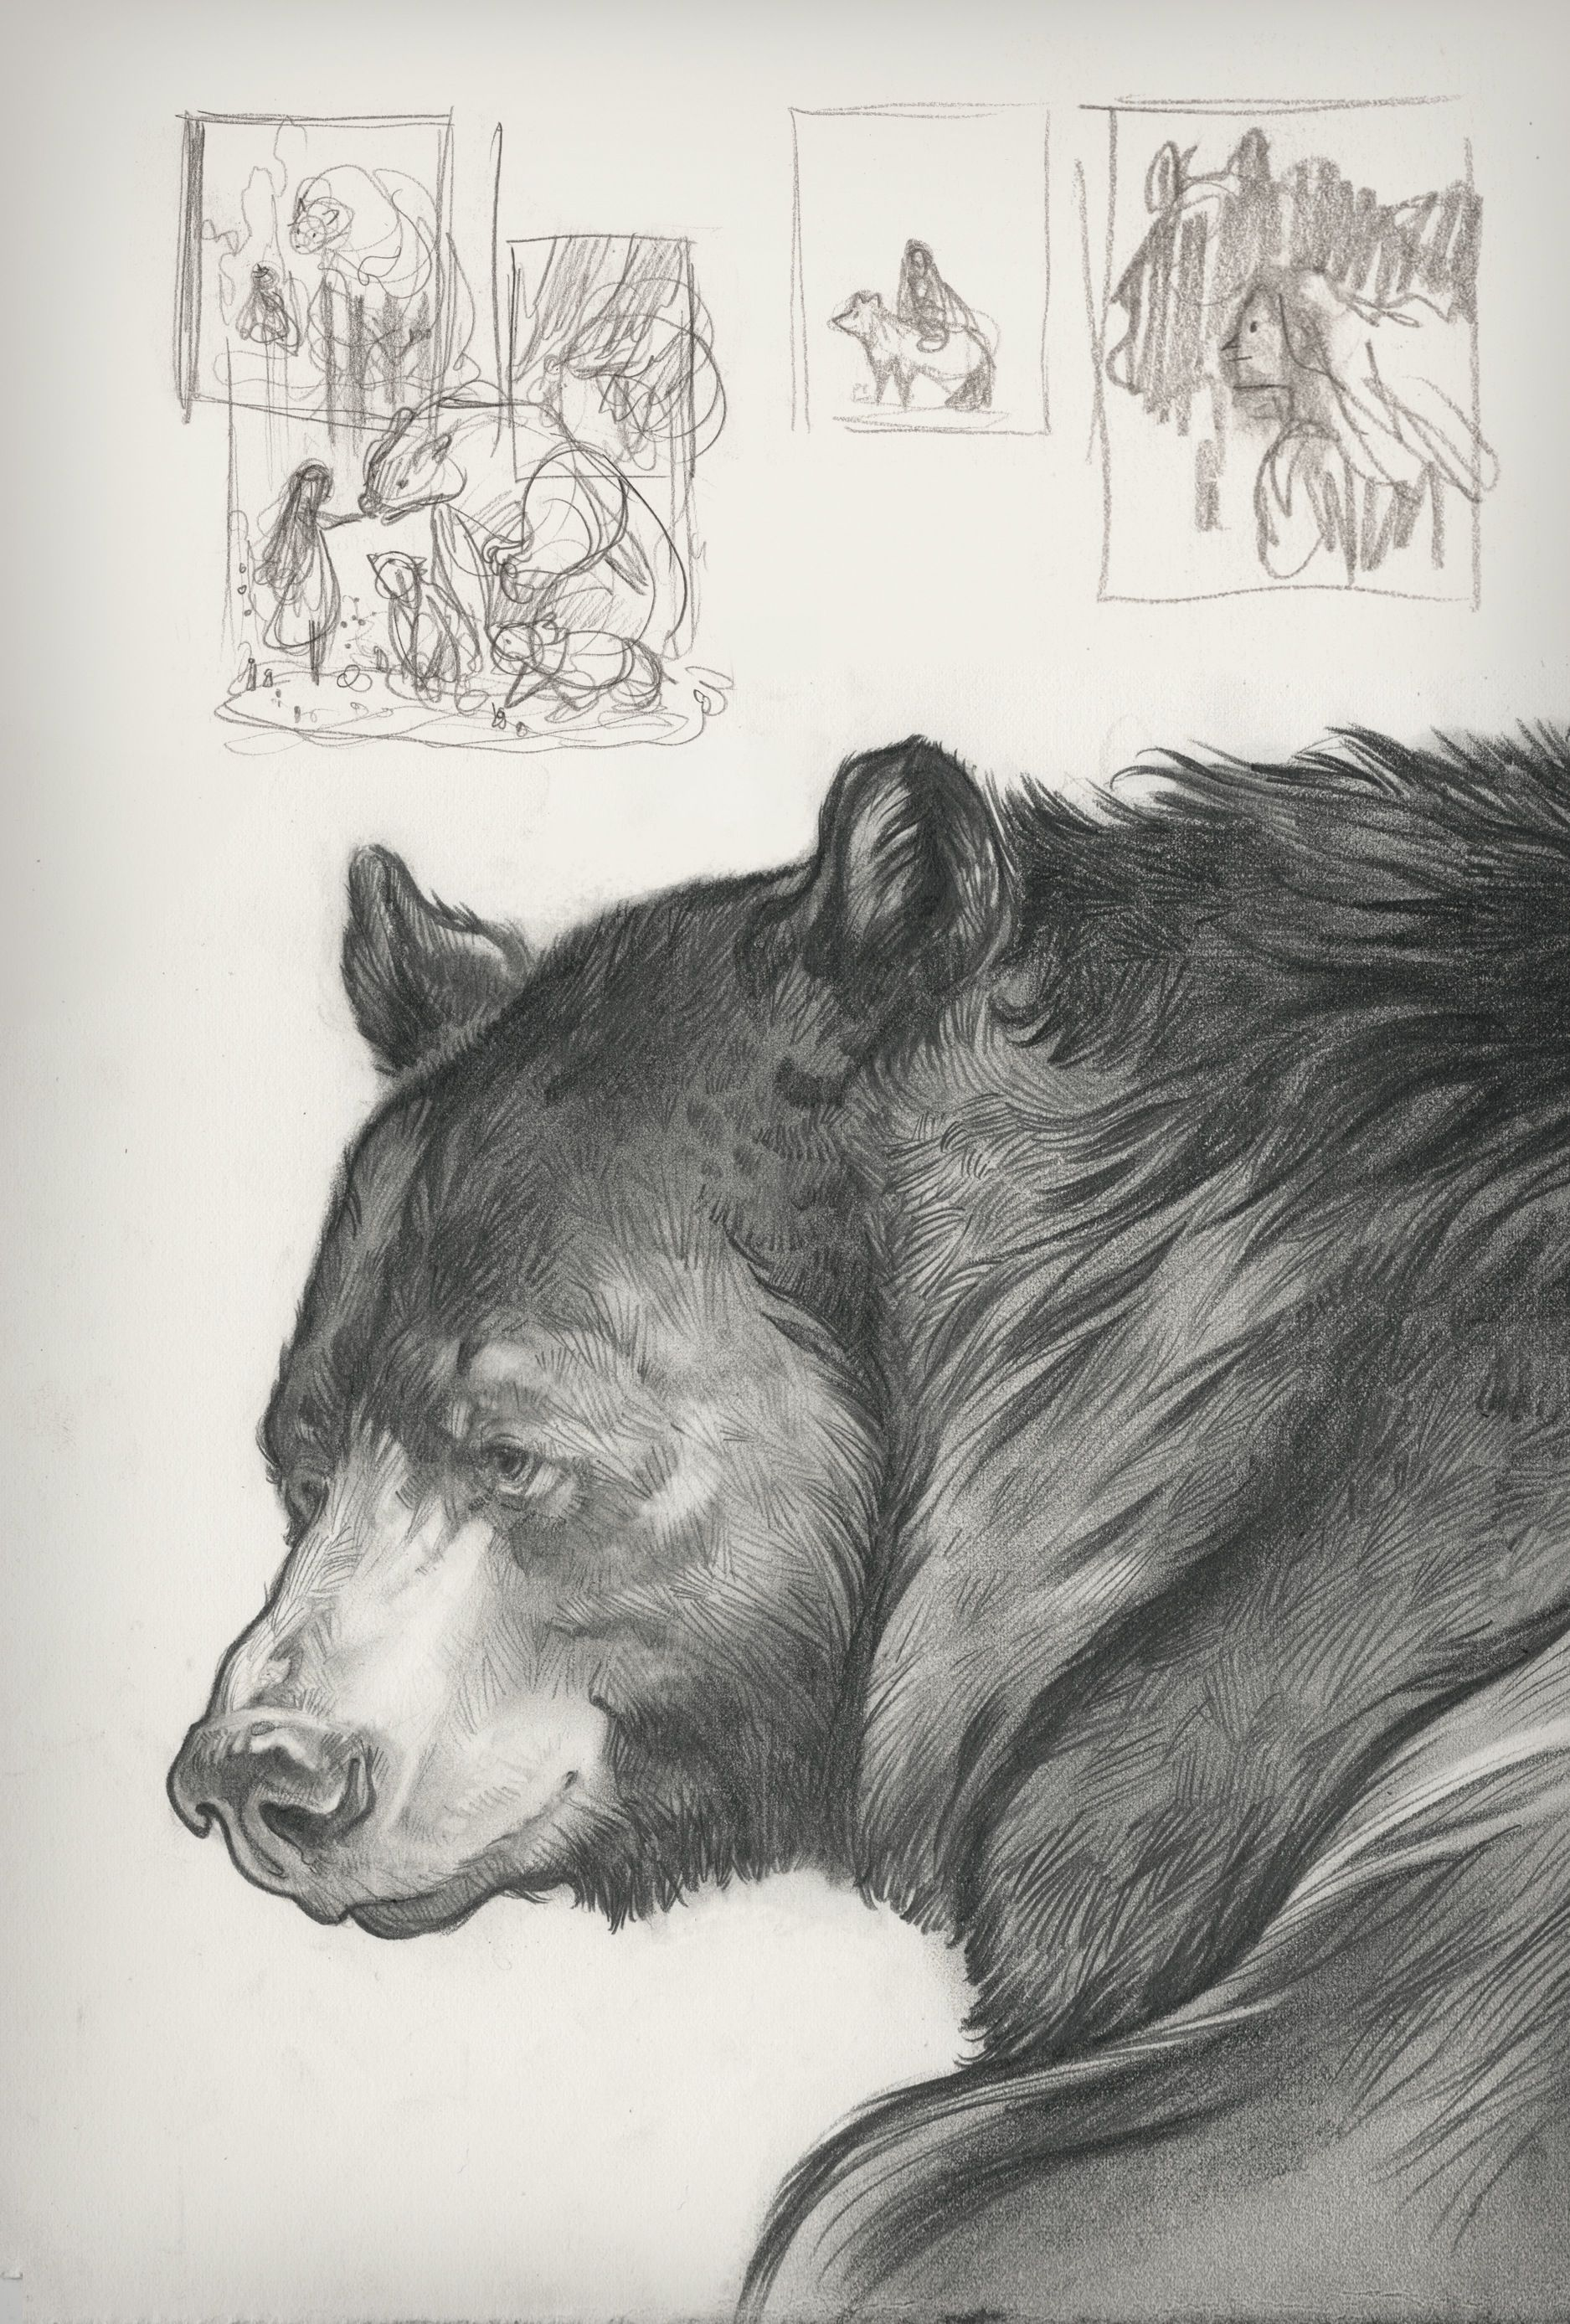 Bear sketch by Cory Godbey, from \